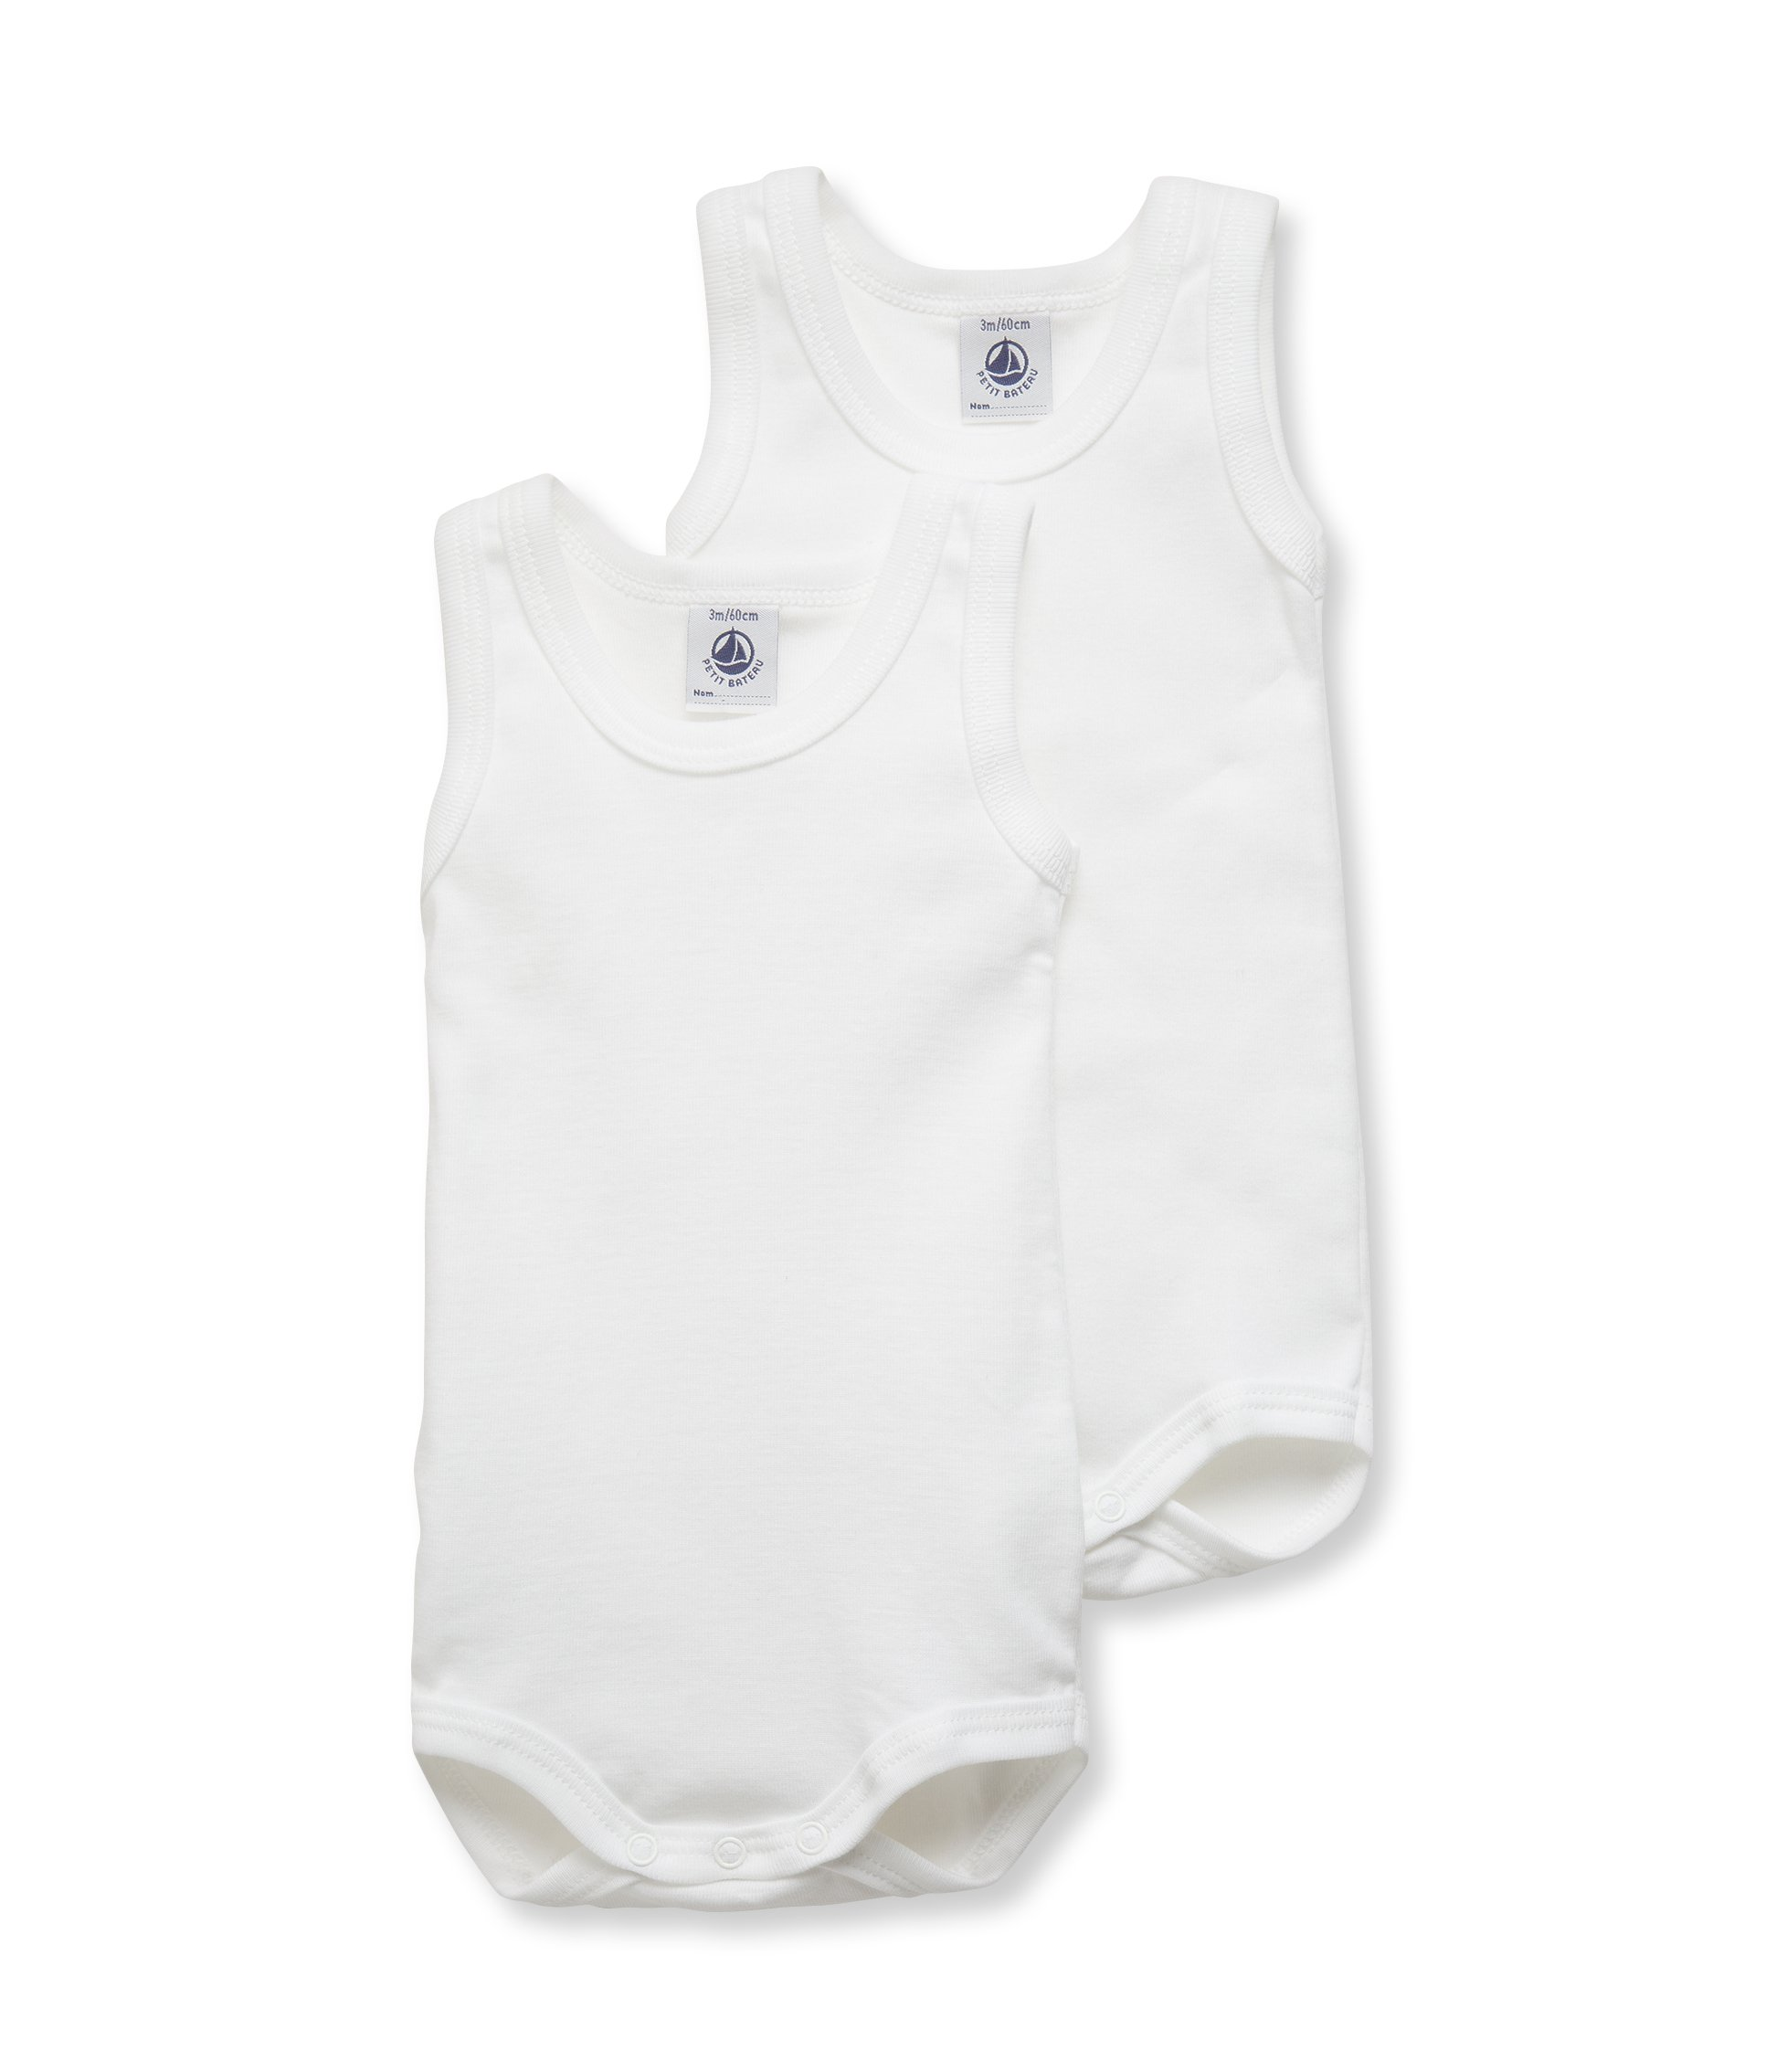 Unisex Baby 2 Pack Tank Bodysuits